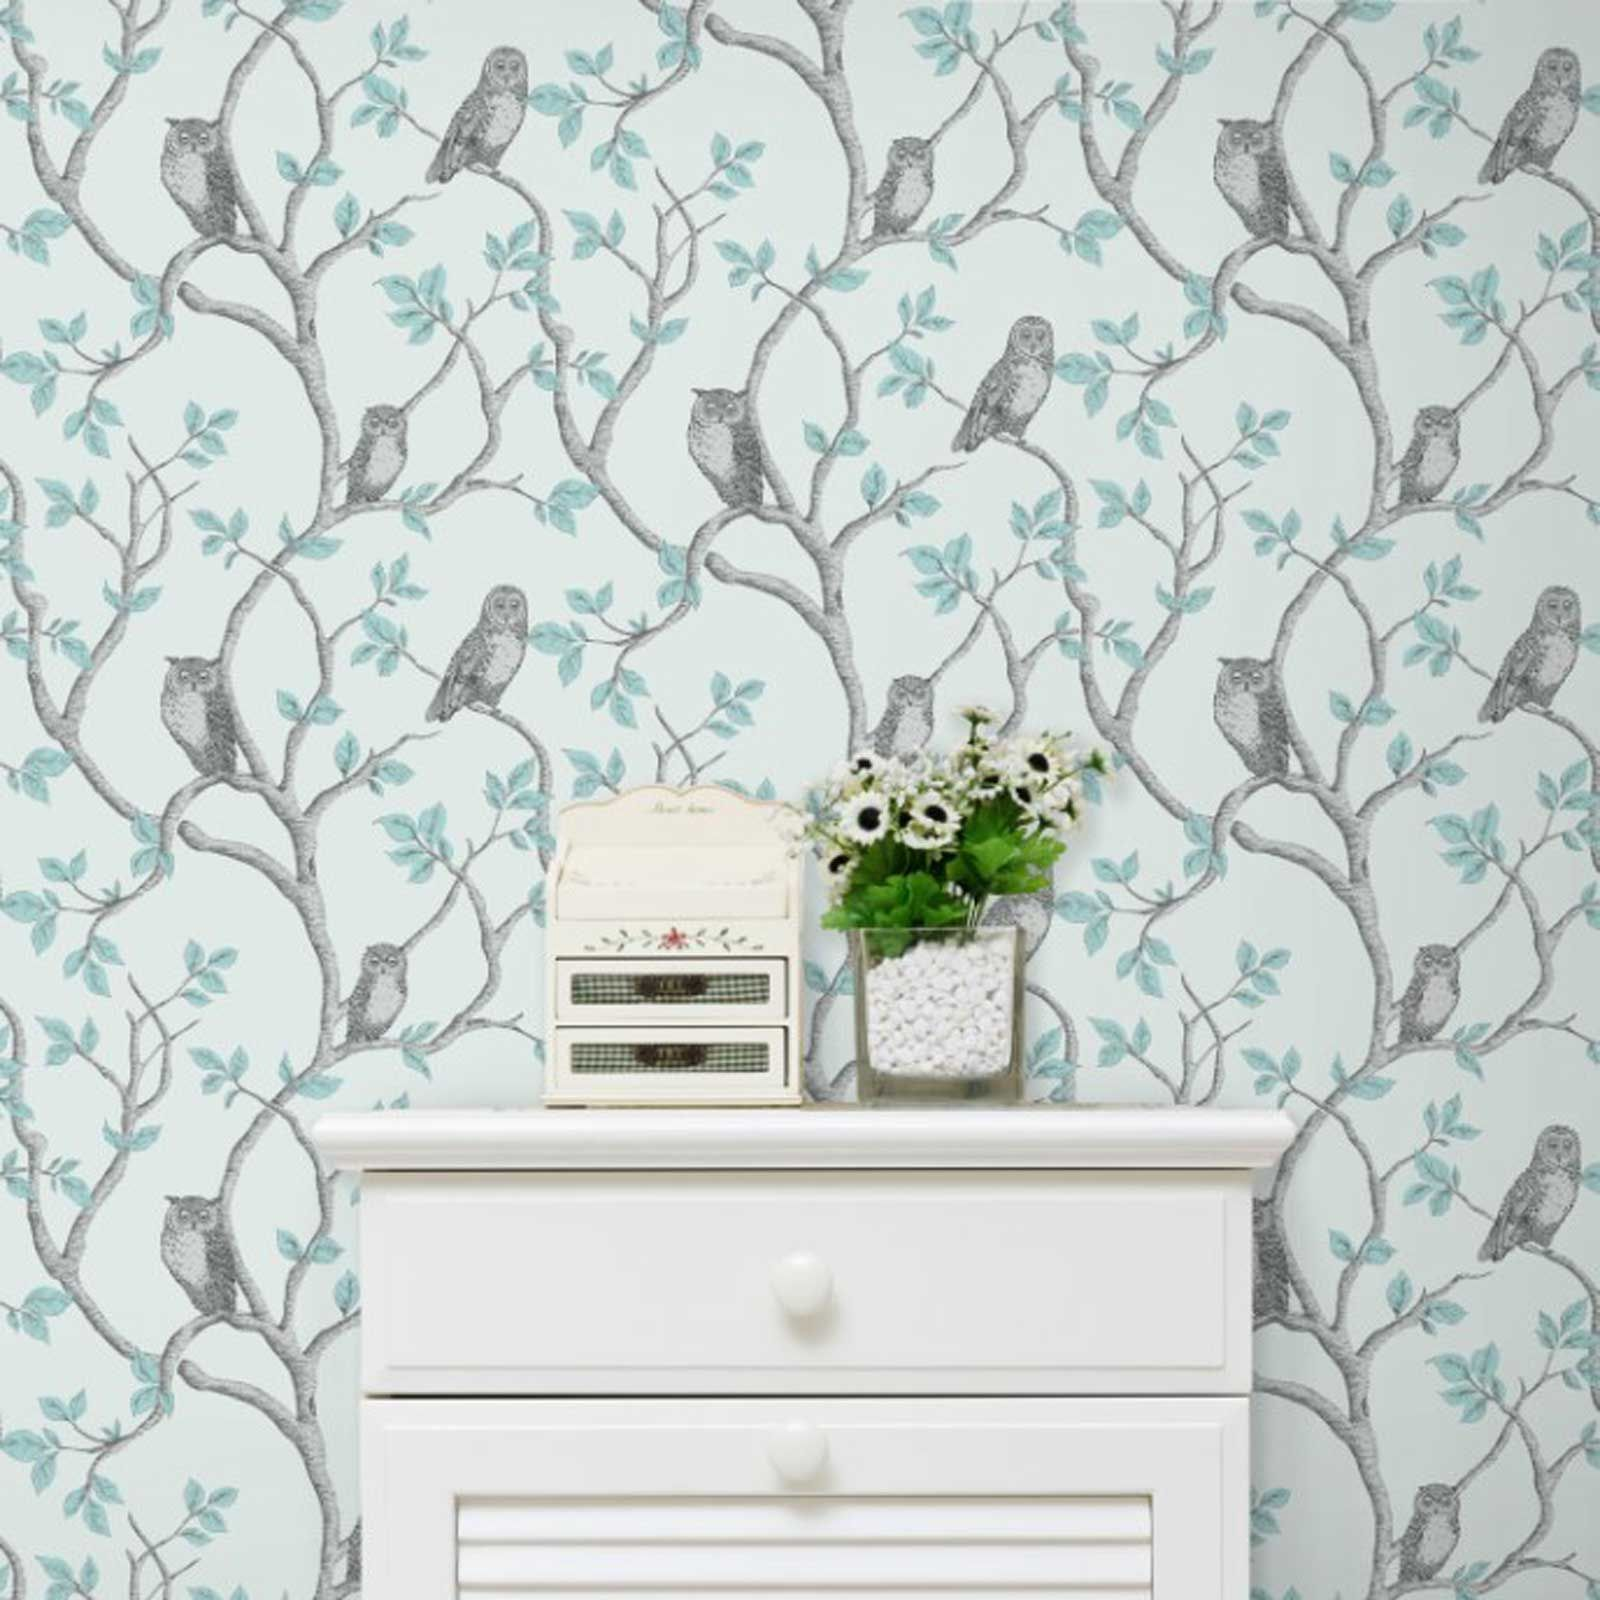 oeufs de canard bleu papier peint bleu sarcelle hibou oiseau paon rouleau ebay. Black Bedroom Furniture Sets. Home Design Ideas